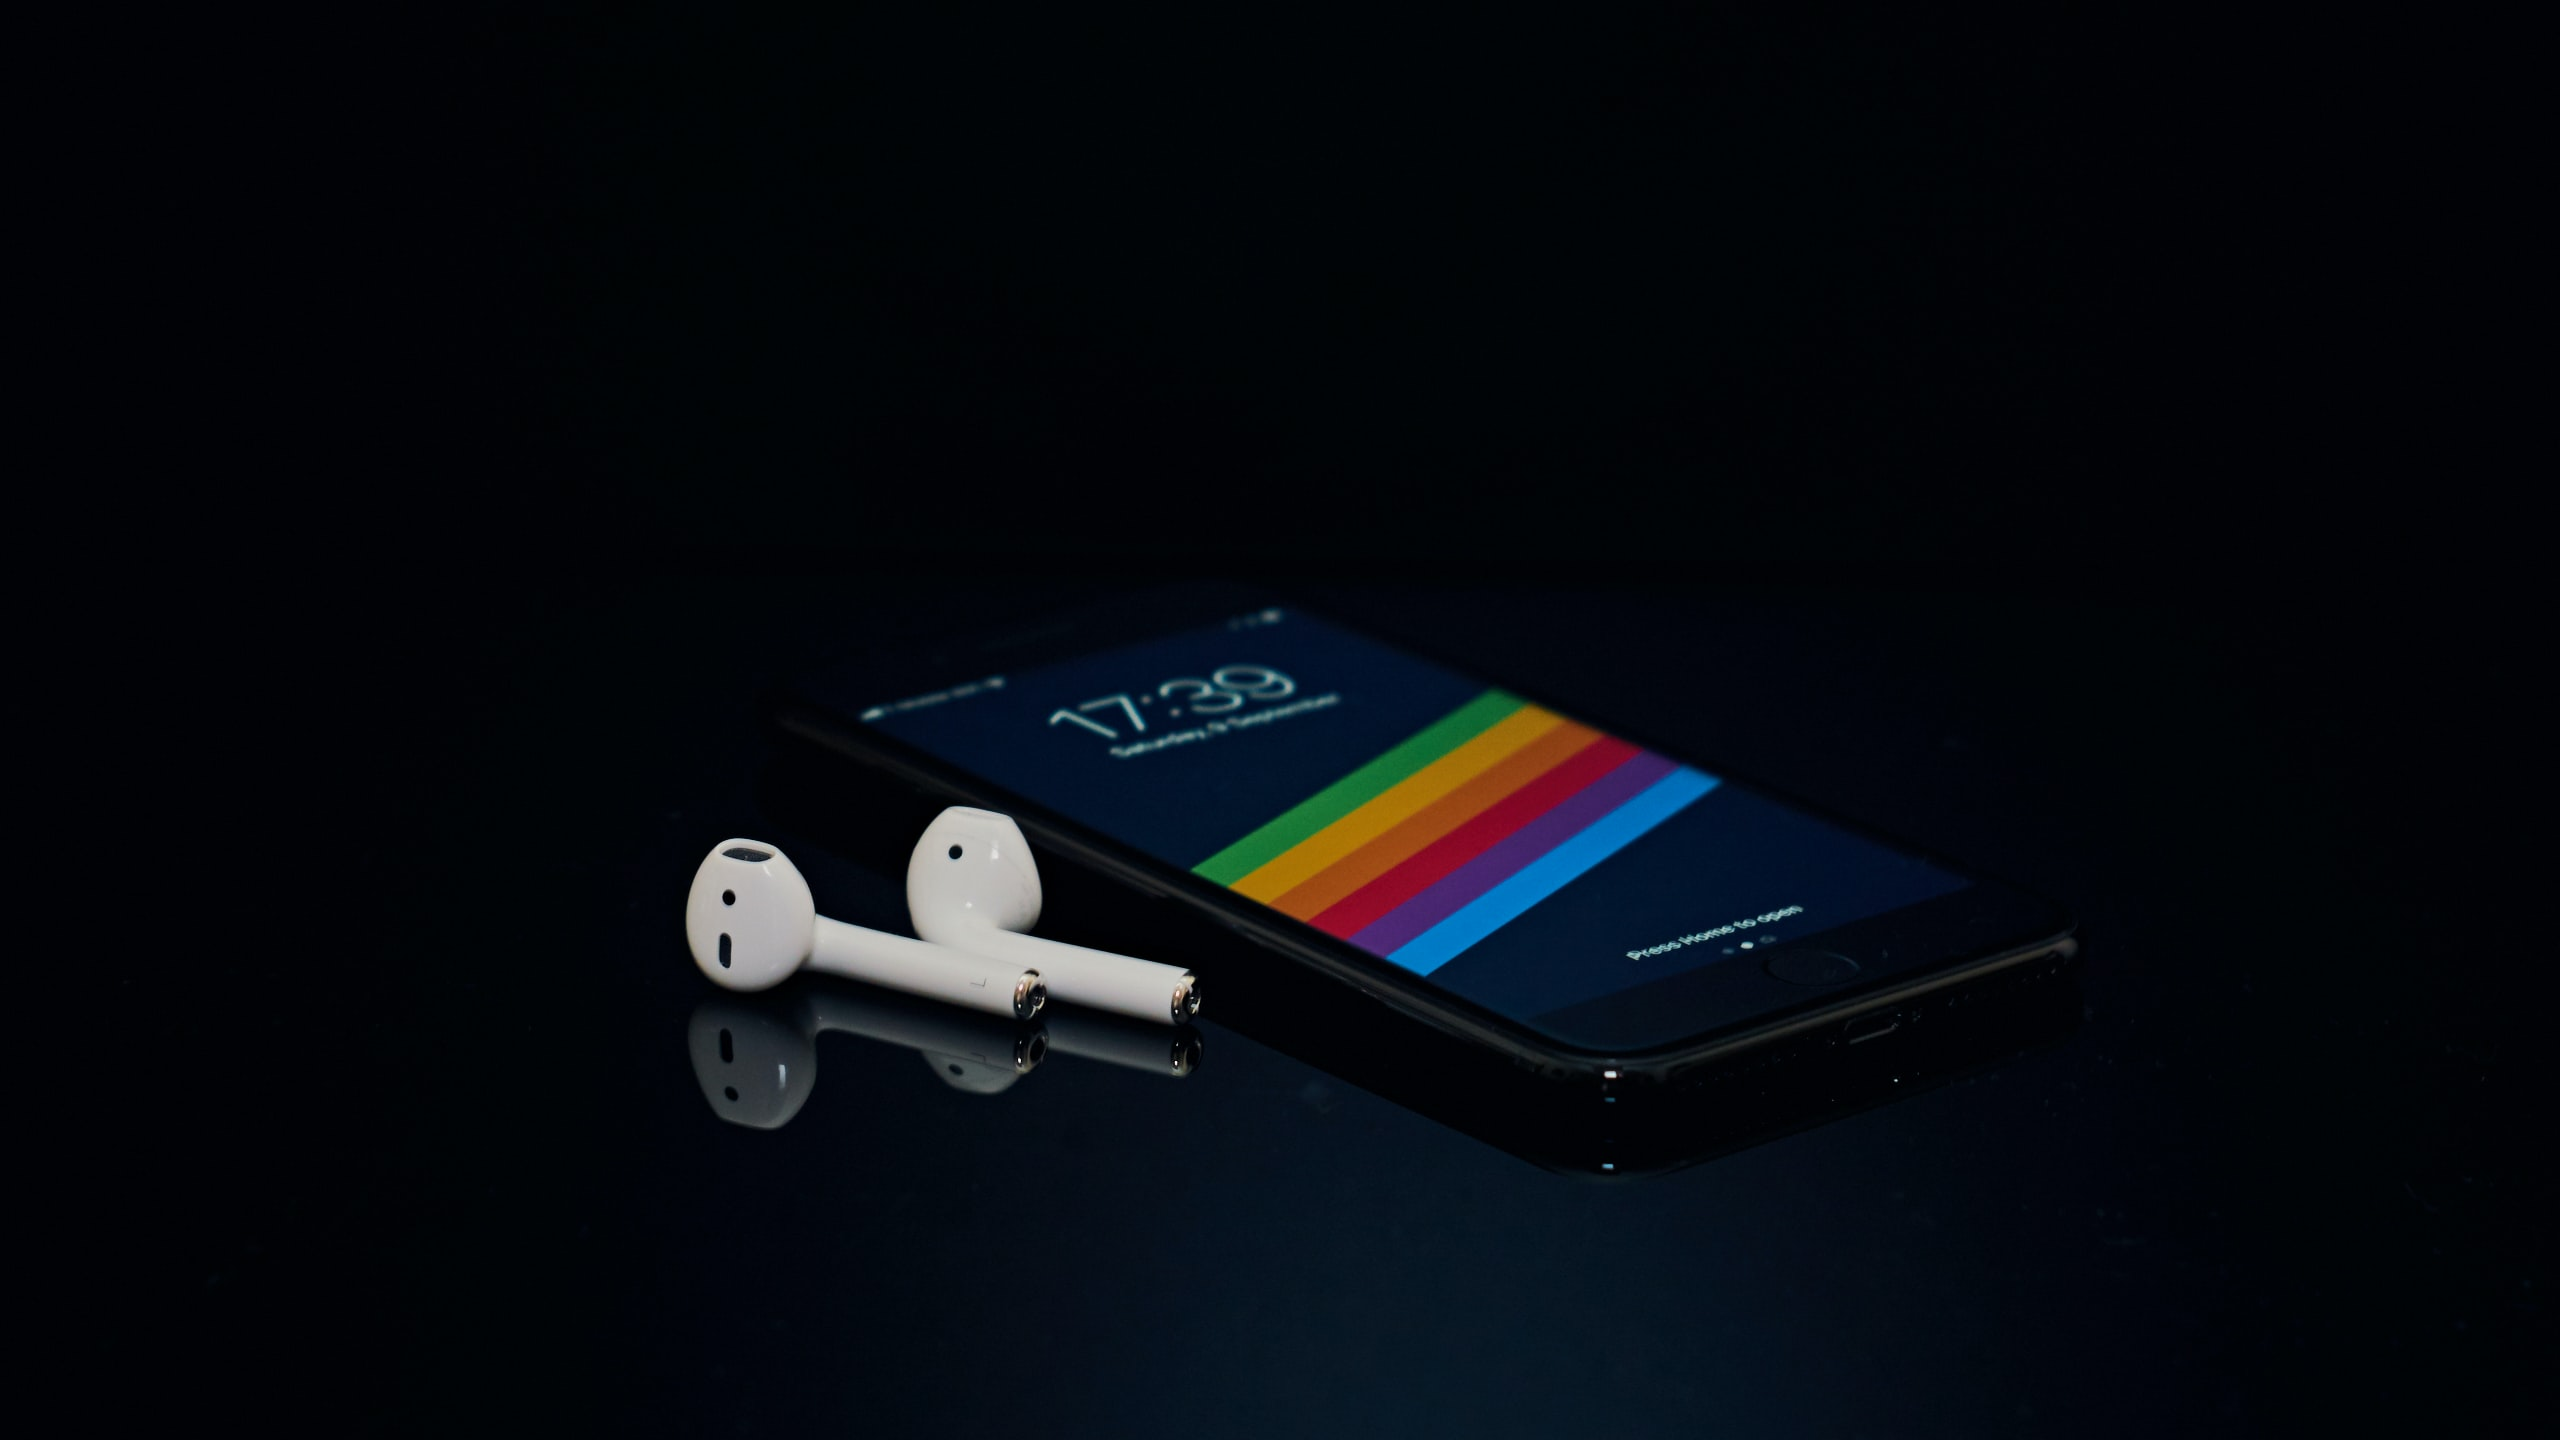 black Android smartphone and Apple AirPods